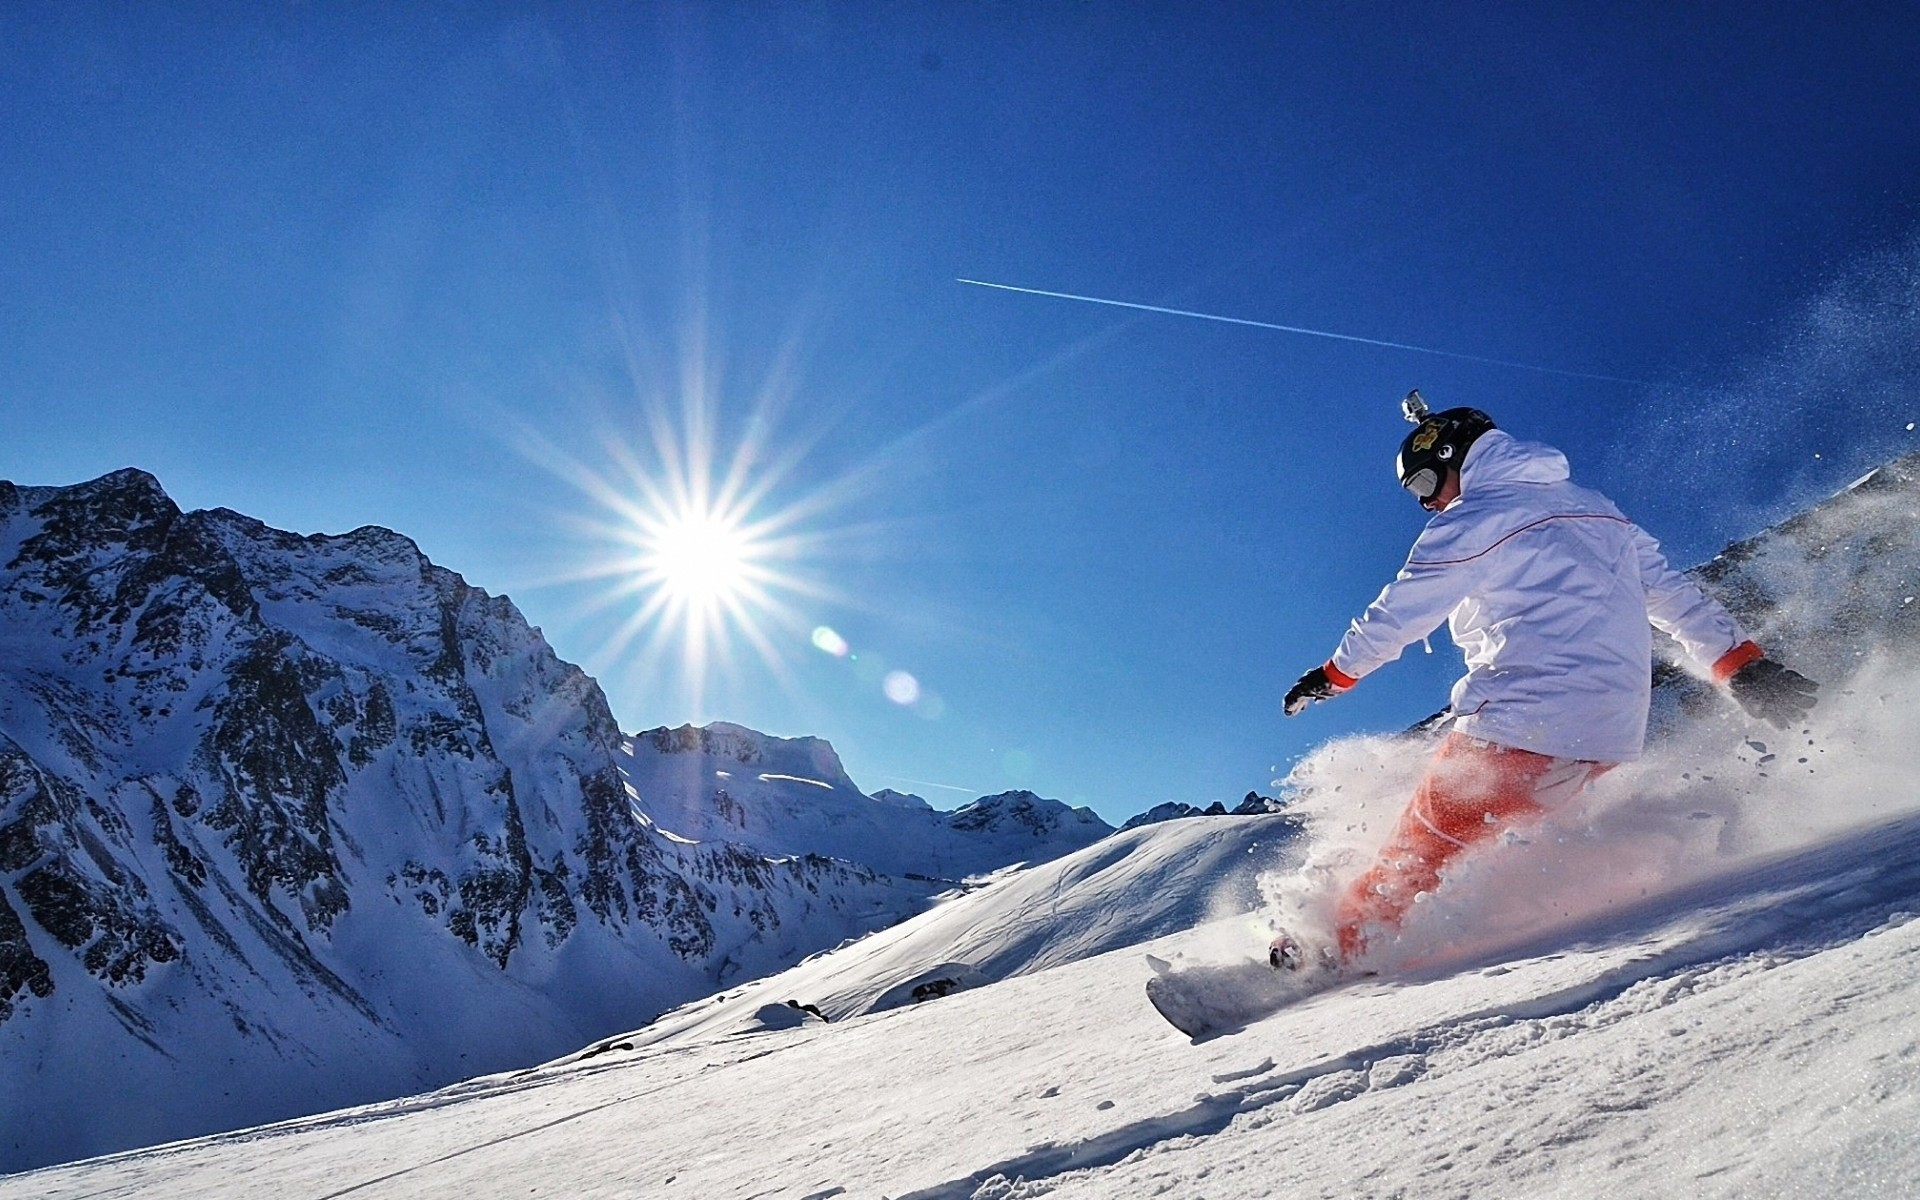 Sport SnowBoarding HD Photography Wallpaper snowboarding wallpapers hd for  free